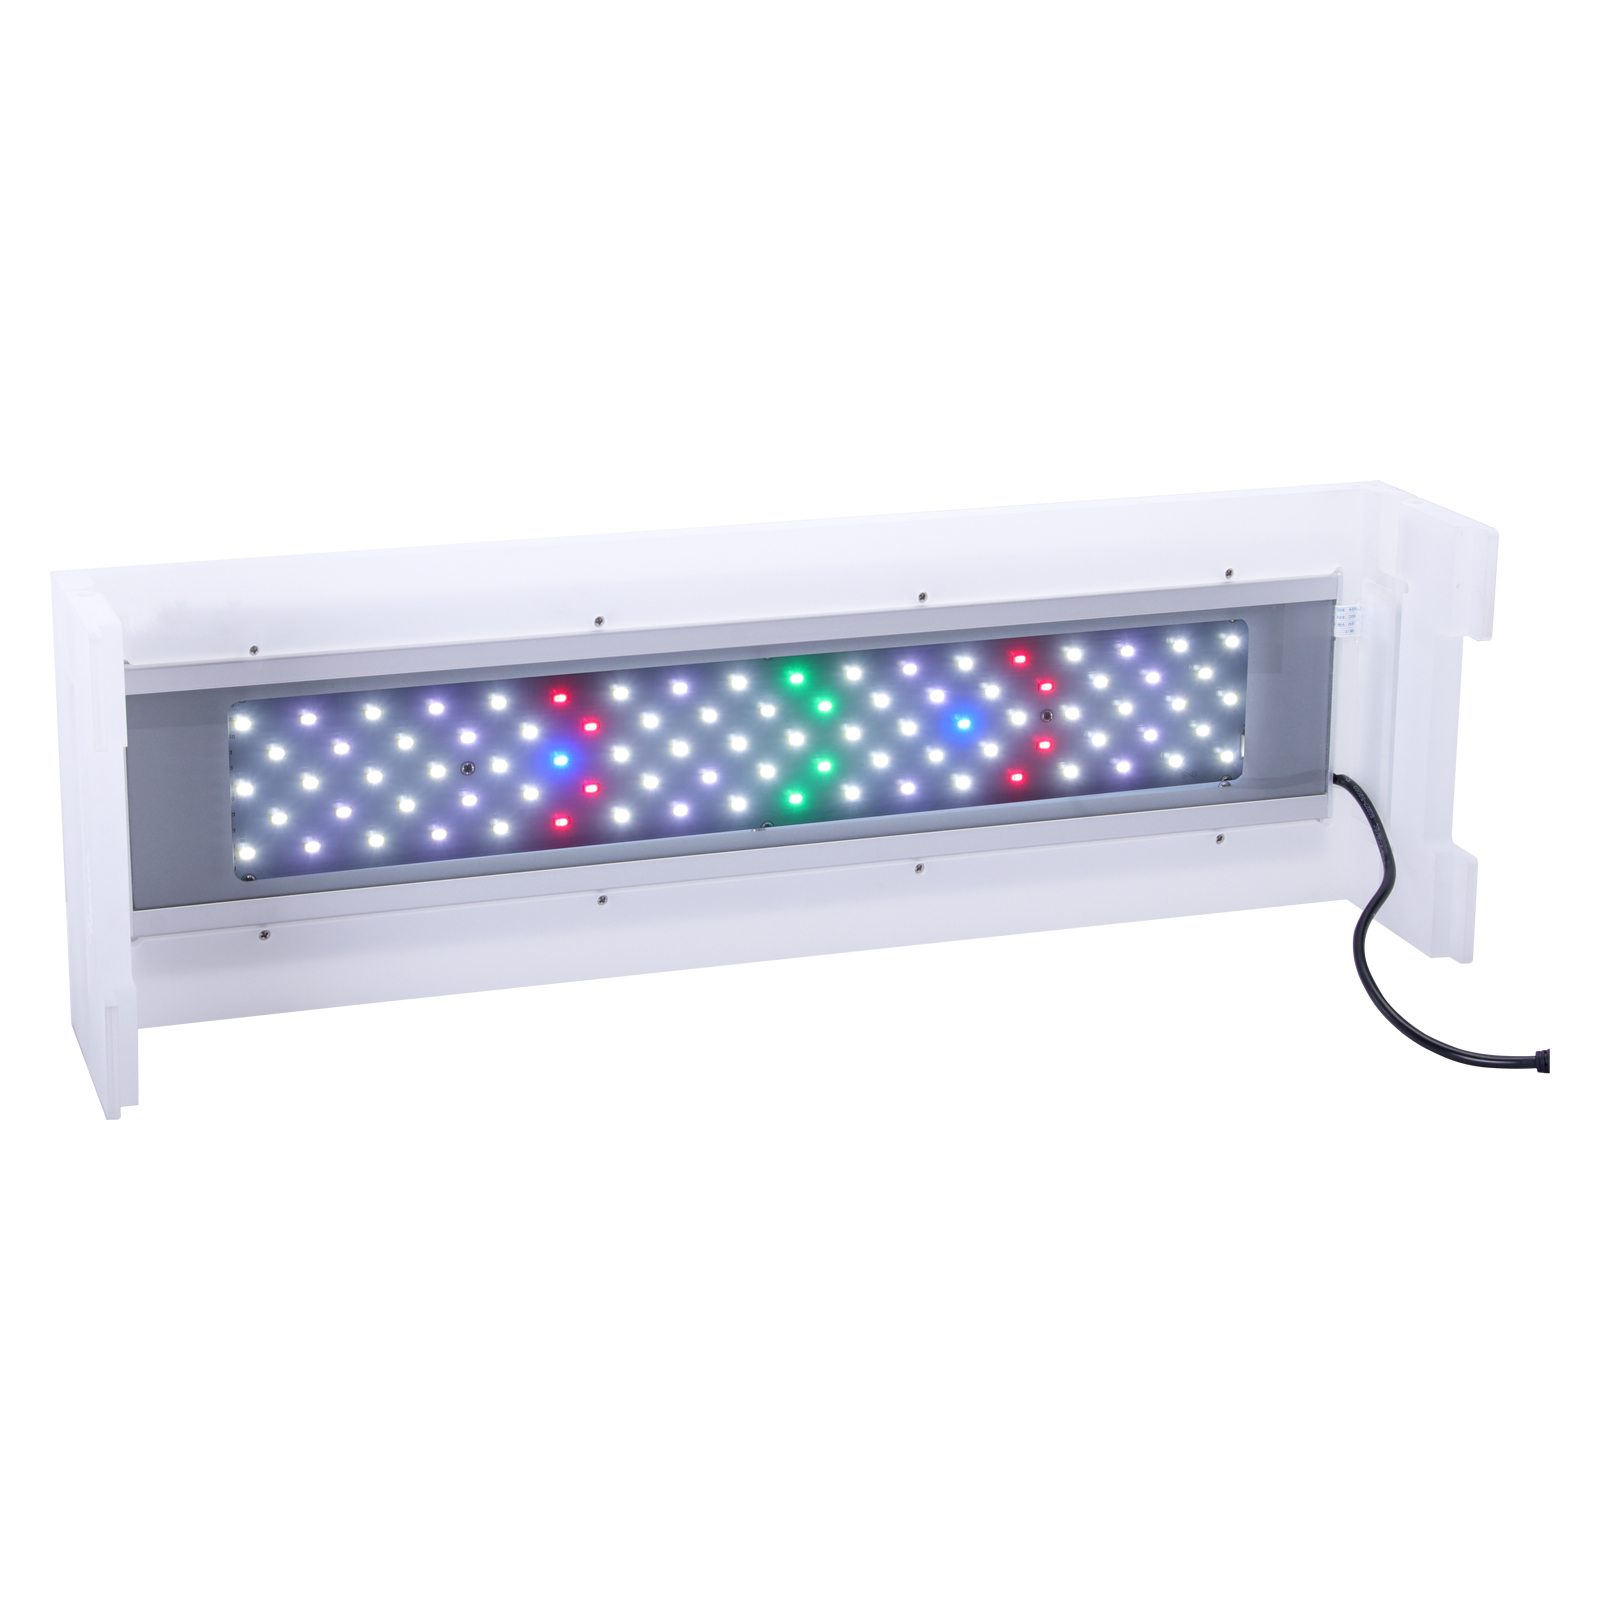 Nemo Light NL A600 24 inch 40W planted & fresh water aquarium LED light with Built-in auto controller